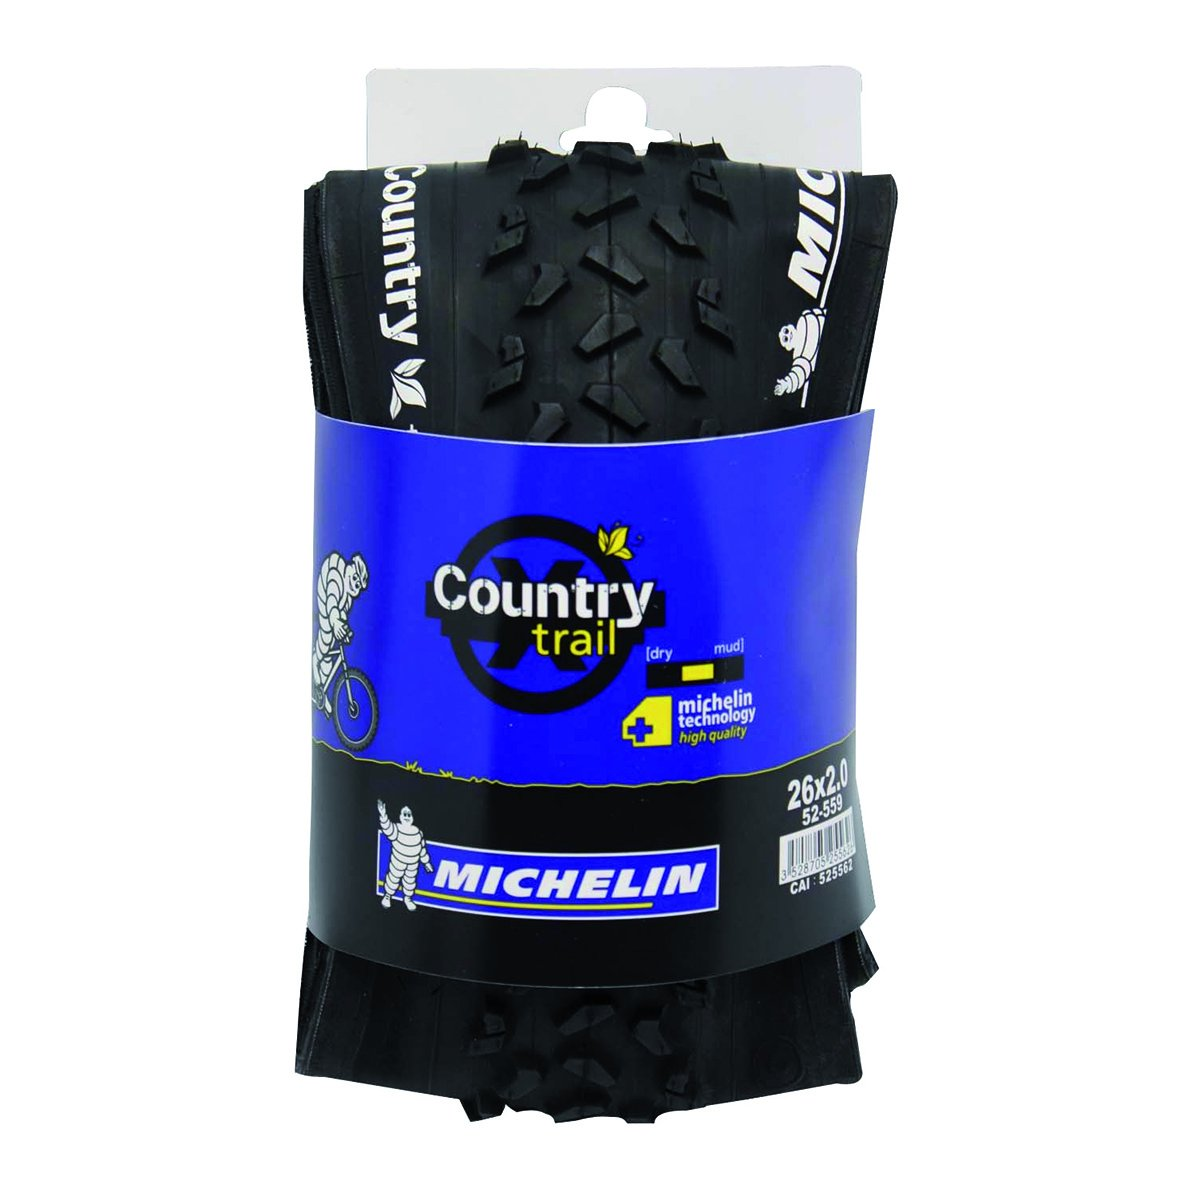 Michelin Country Trail - Cubierta para bicicleta: Amazon.es: Deportes y aire libre